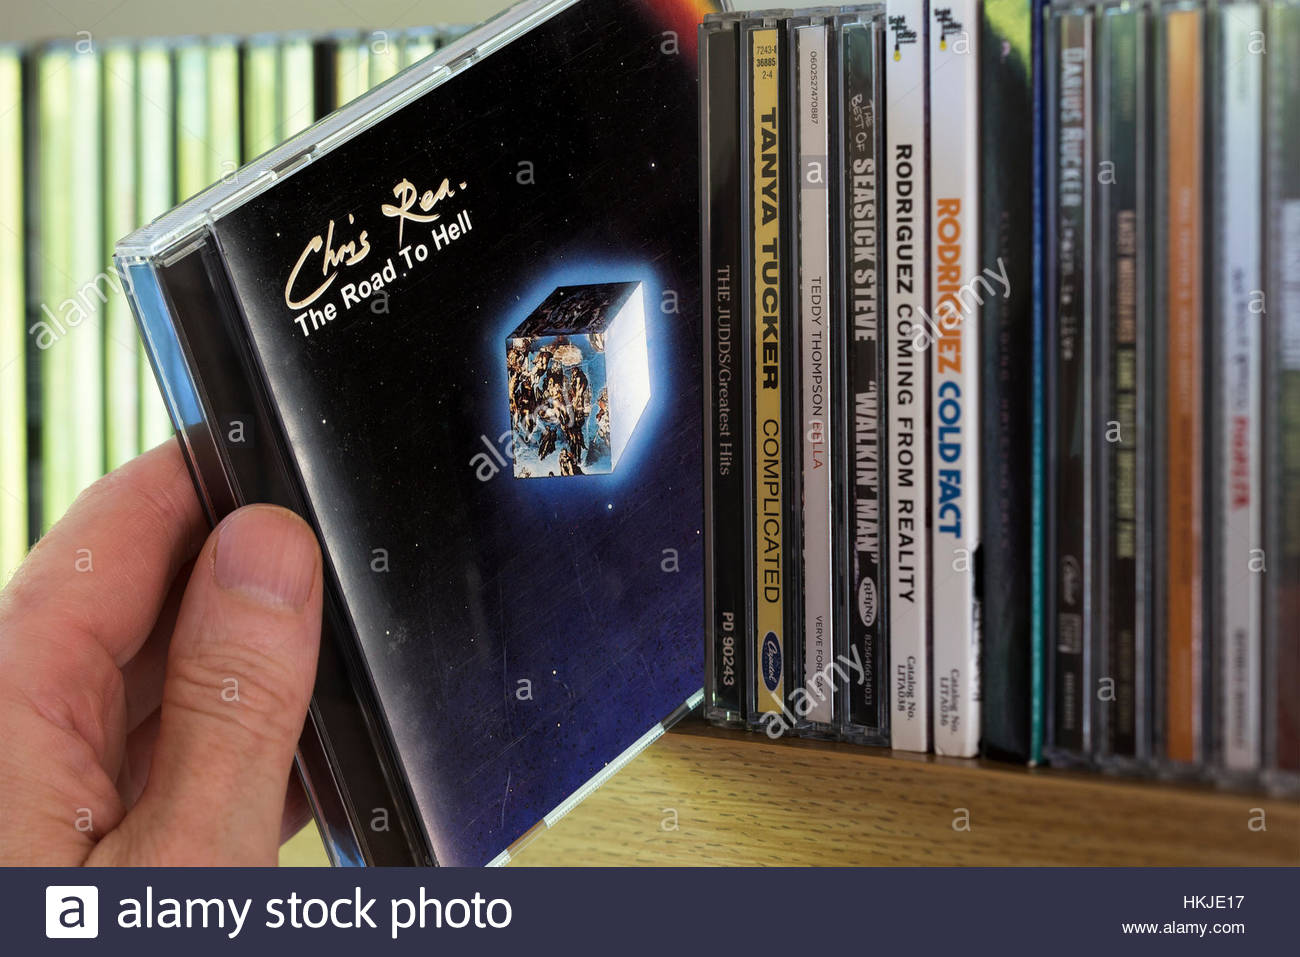 The Road To Hell, Chris Rea CD being chosen from a shelf of other CD's - Stock Image